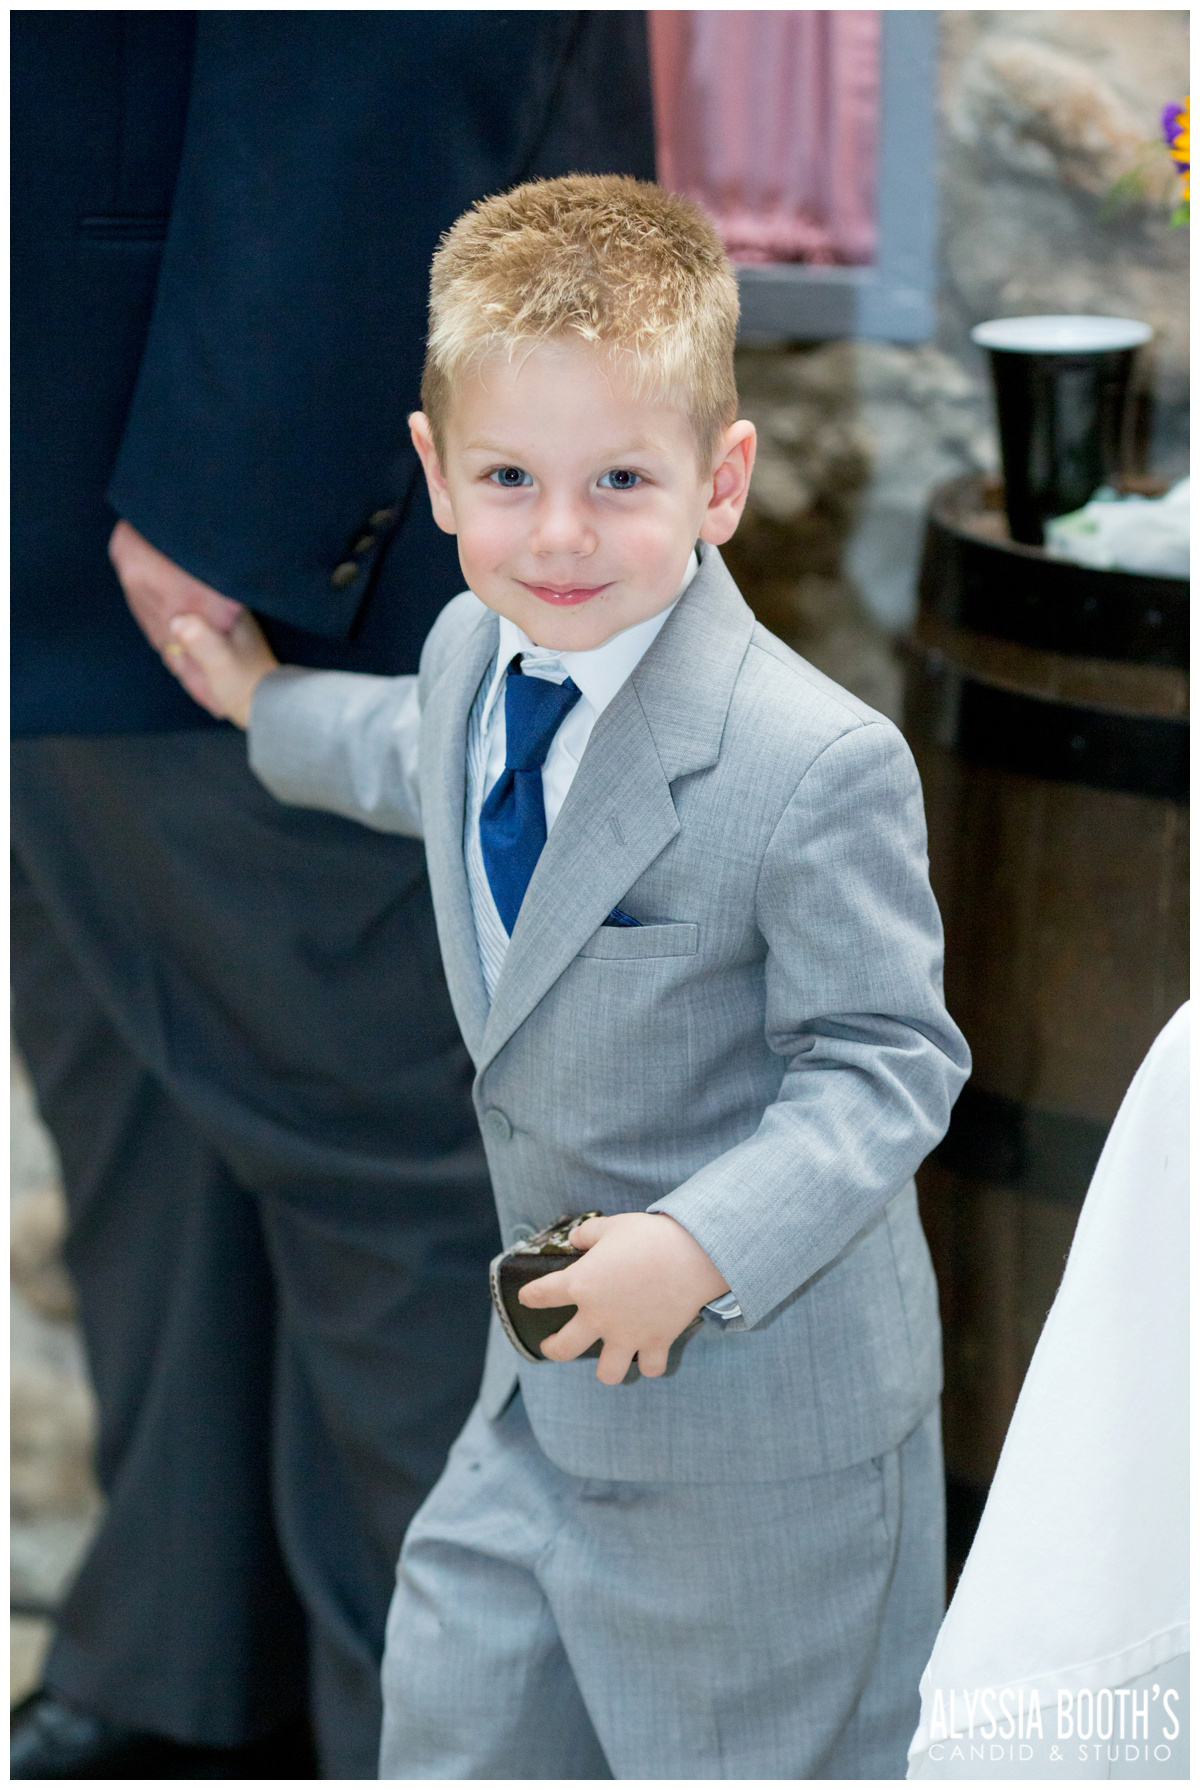 Ring Bearer | Marisa & Garrett 10.23.15 | Wedding at the Lawton Community Center | Kalamazoo Mi | Alyssia Booth's Candid & Studio